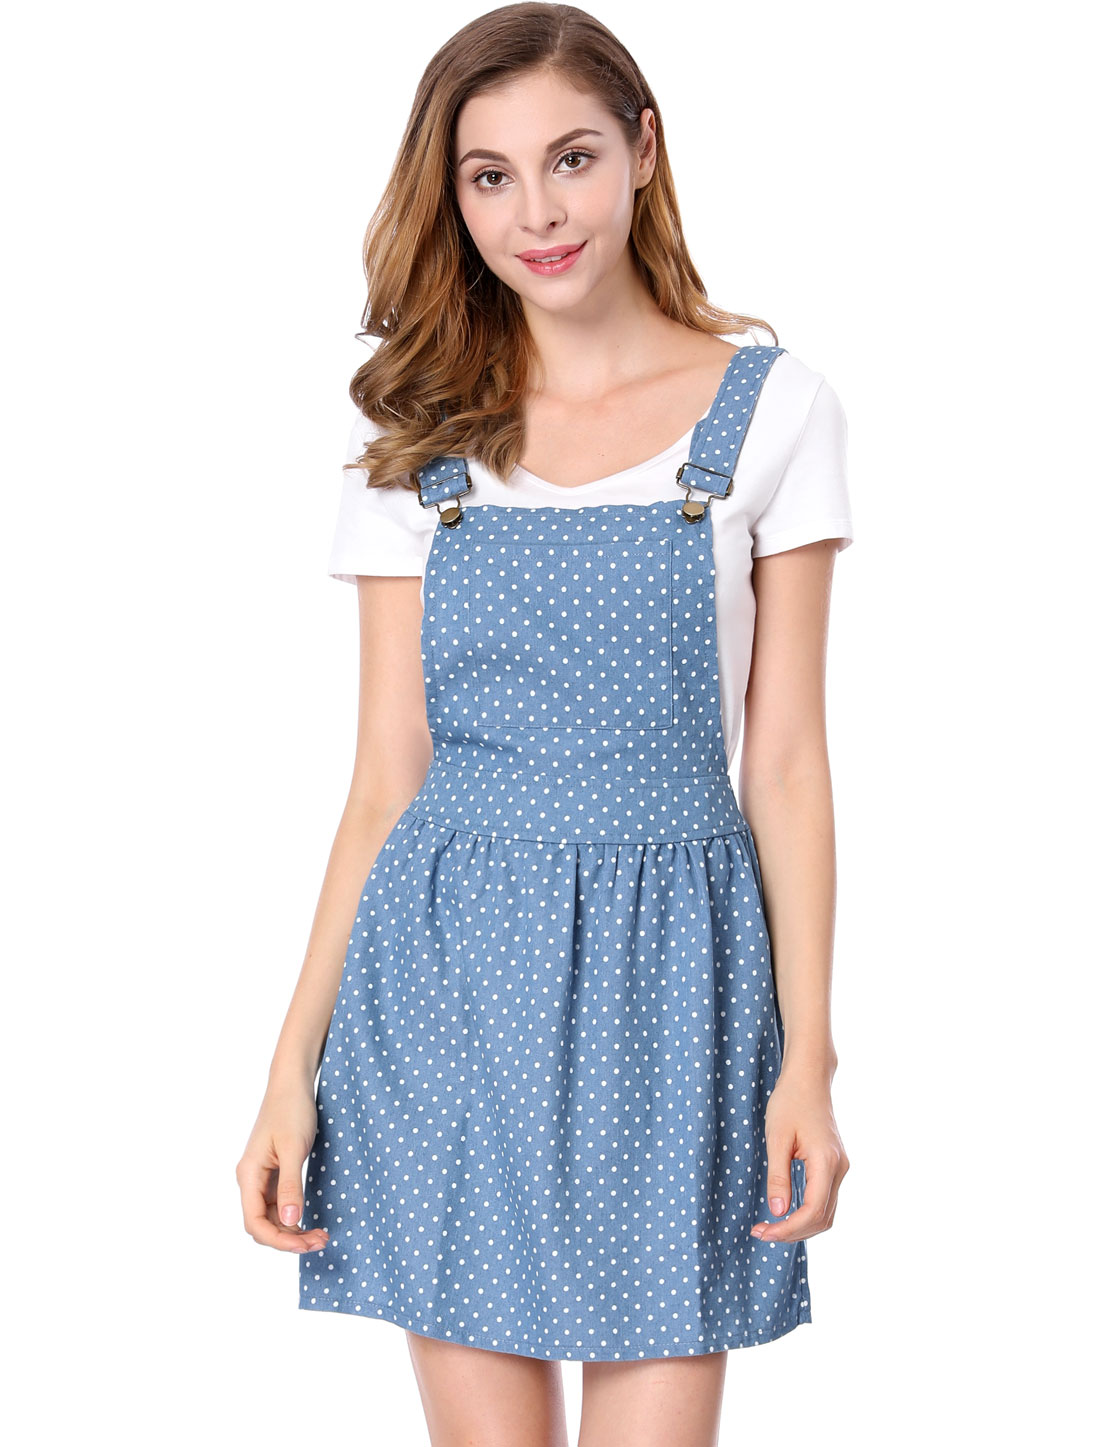 Women Fashion Dots Adjustable Shoulder Straps Denim Overall Dress Light Blue XS